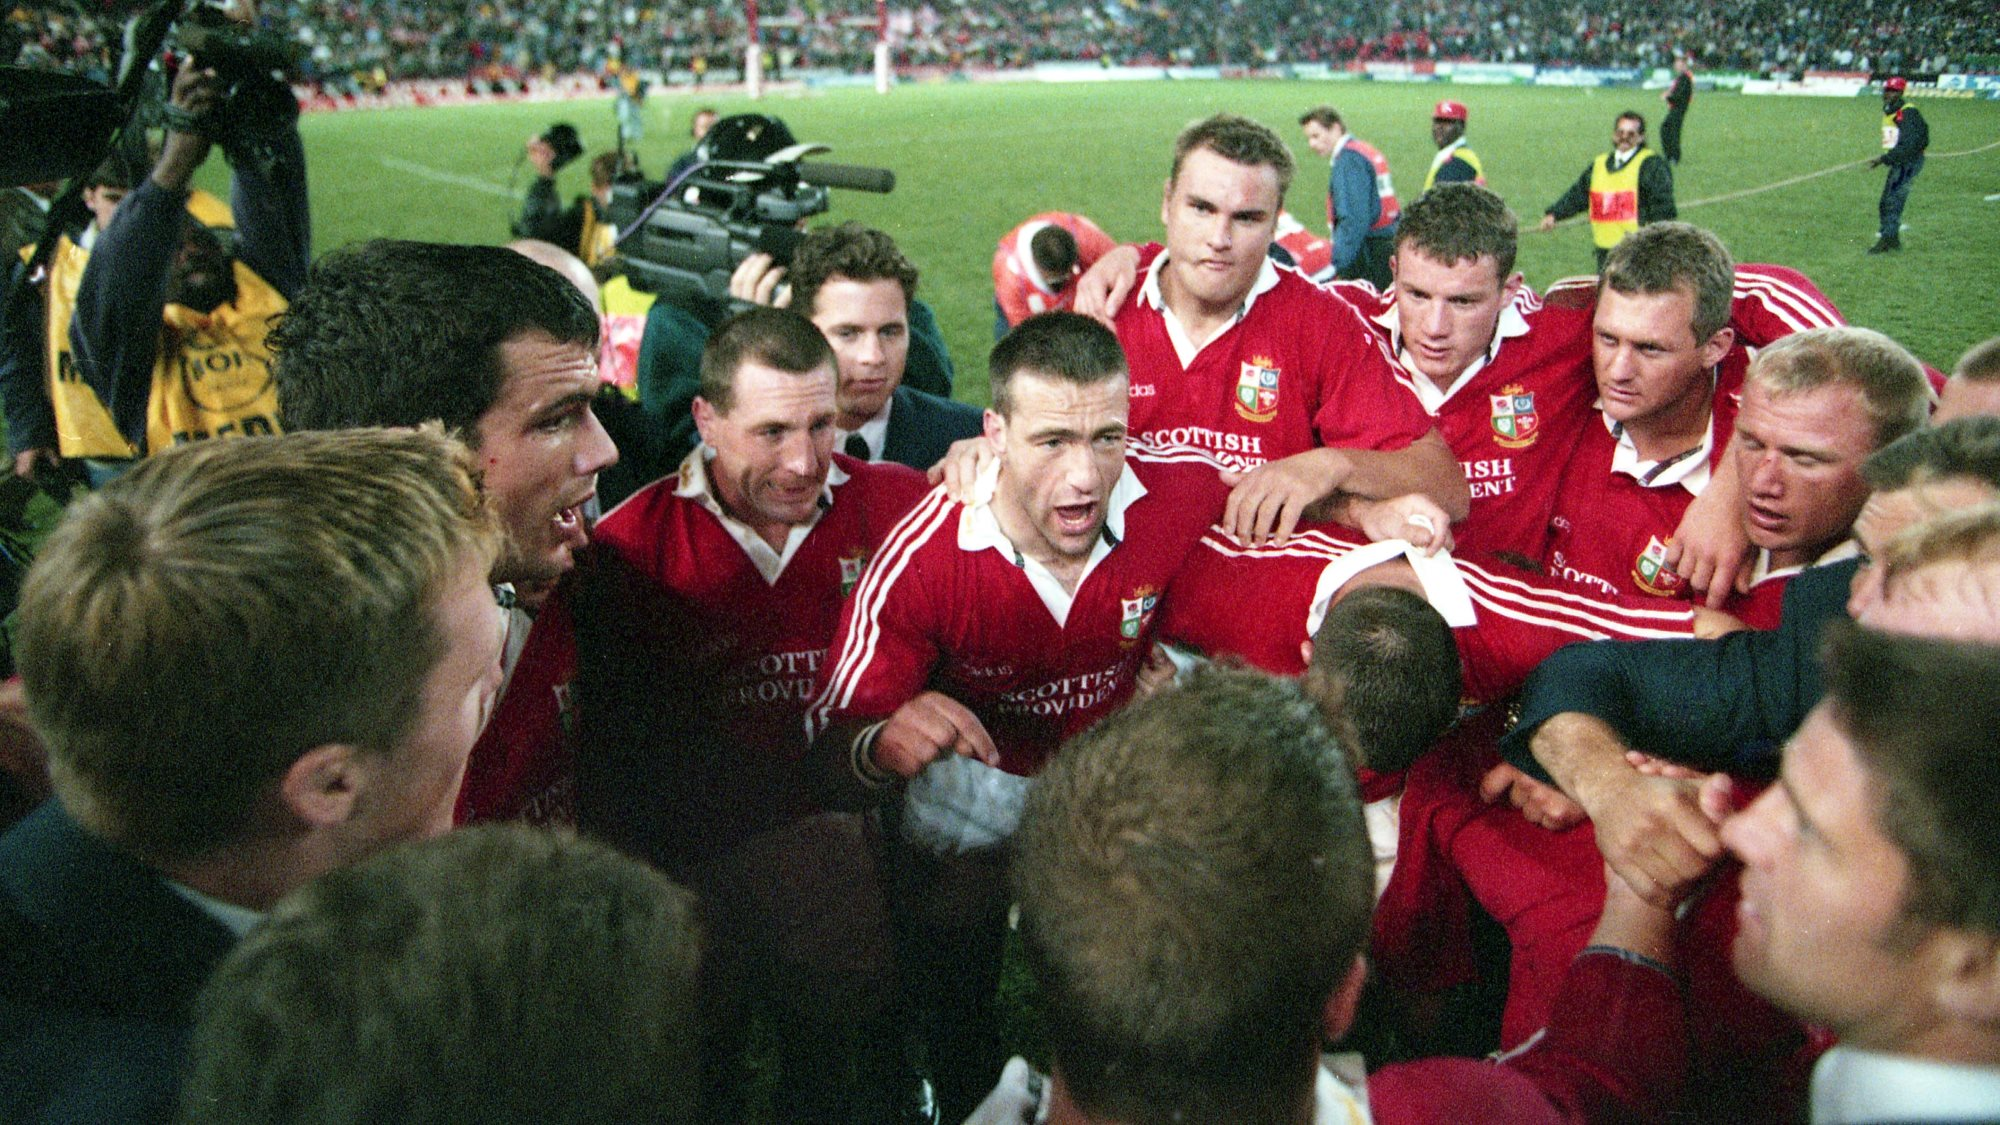 Competition – Win a Signed and Framed Print of the 1997 Team